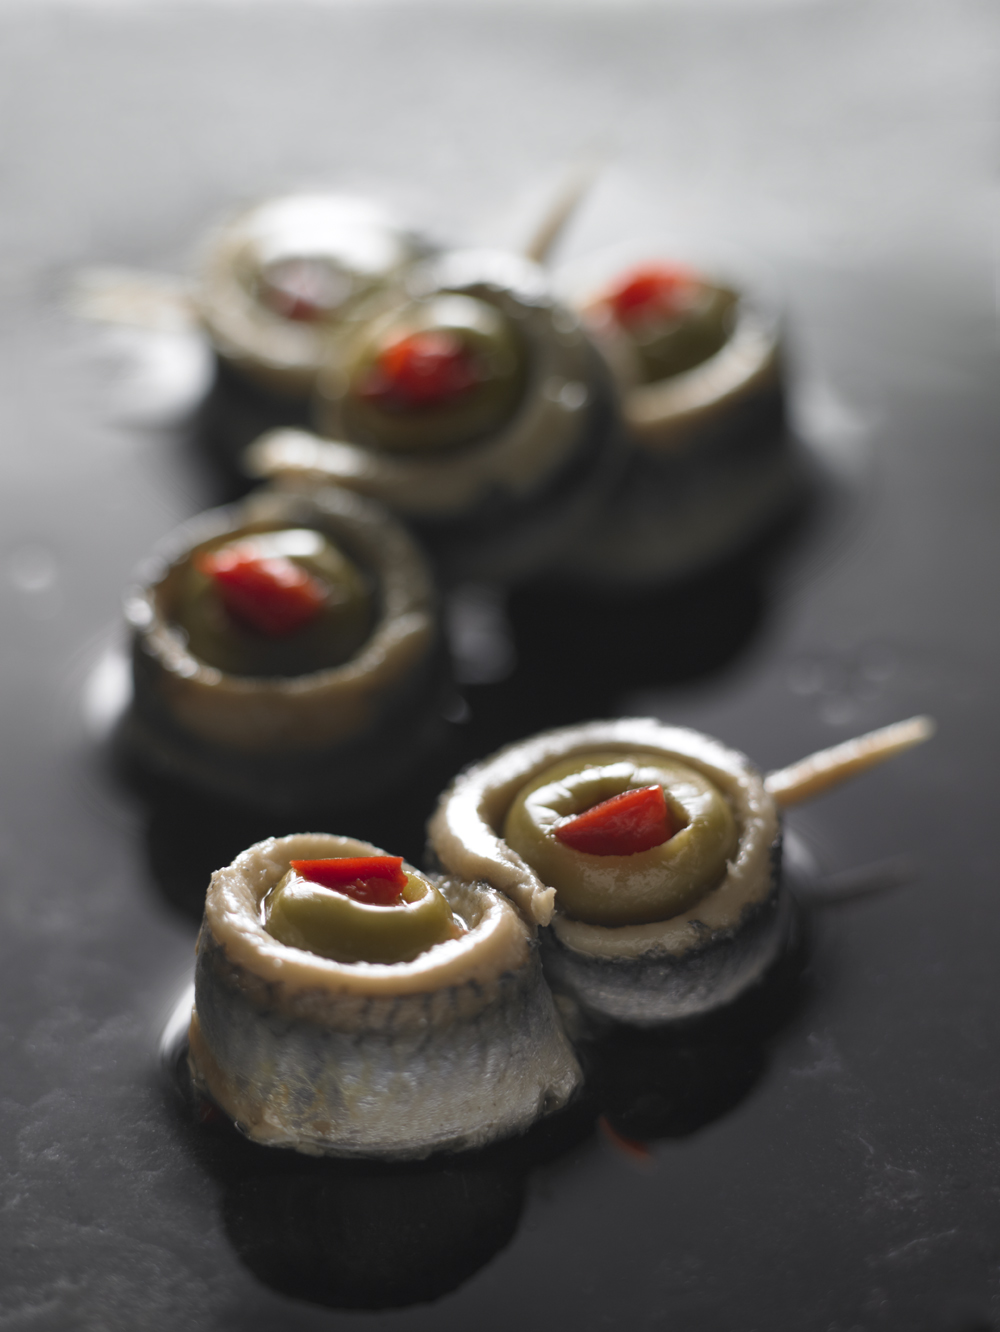 Anchovies stuffed with red pepper